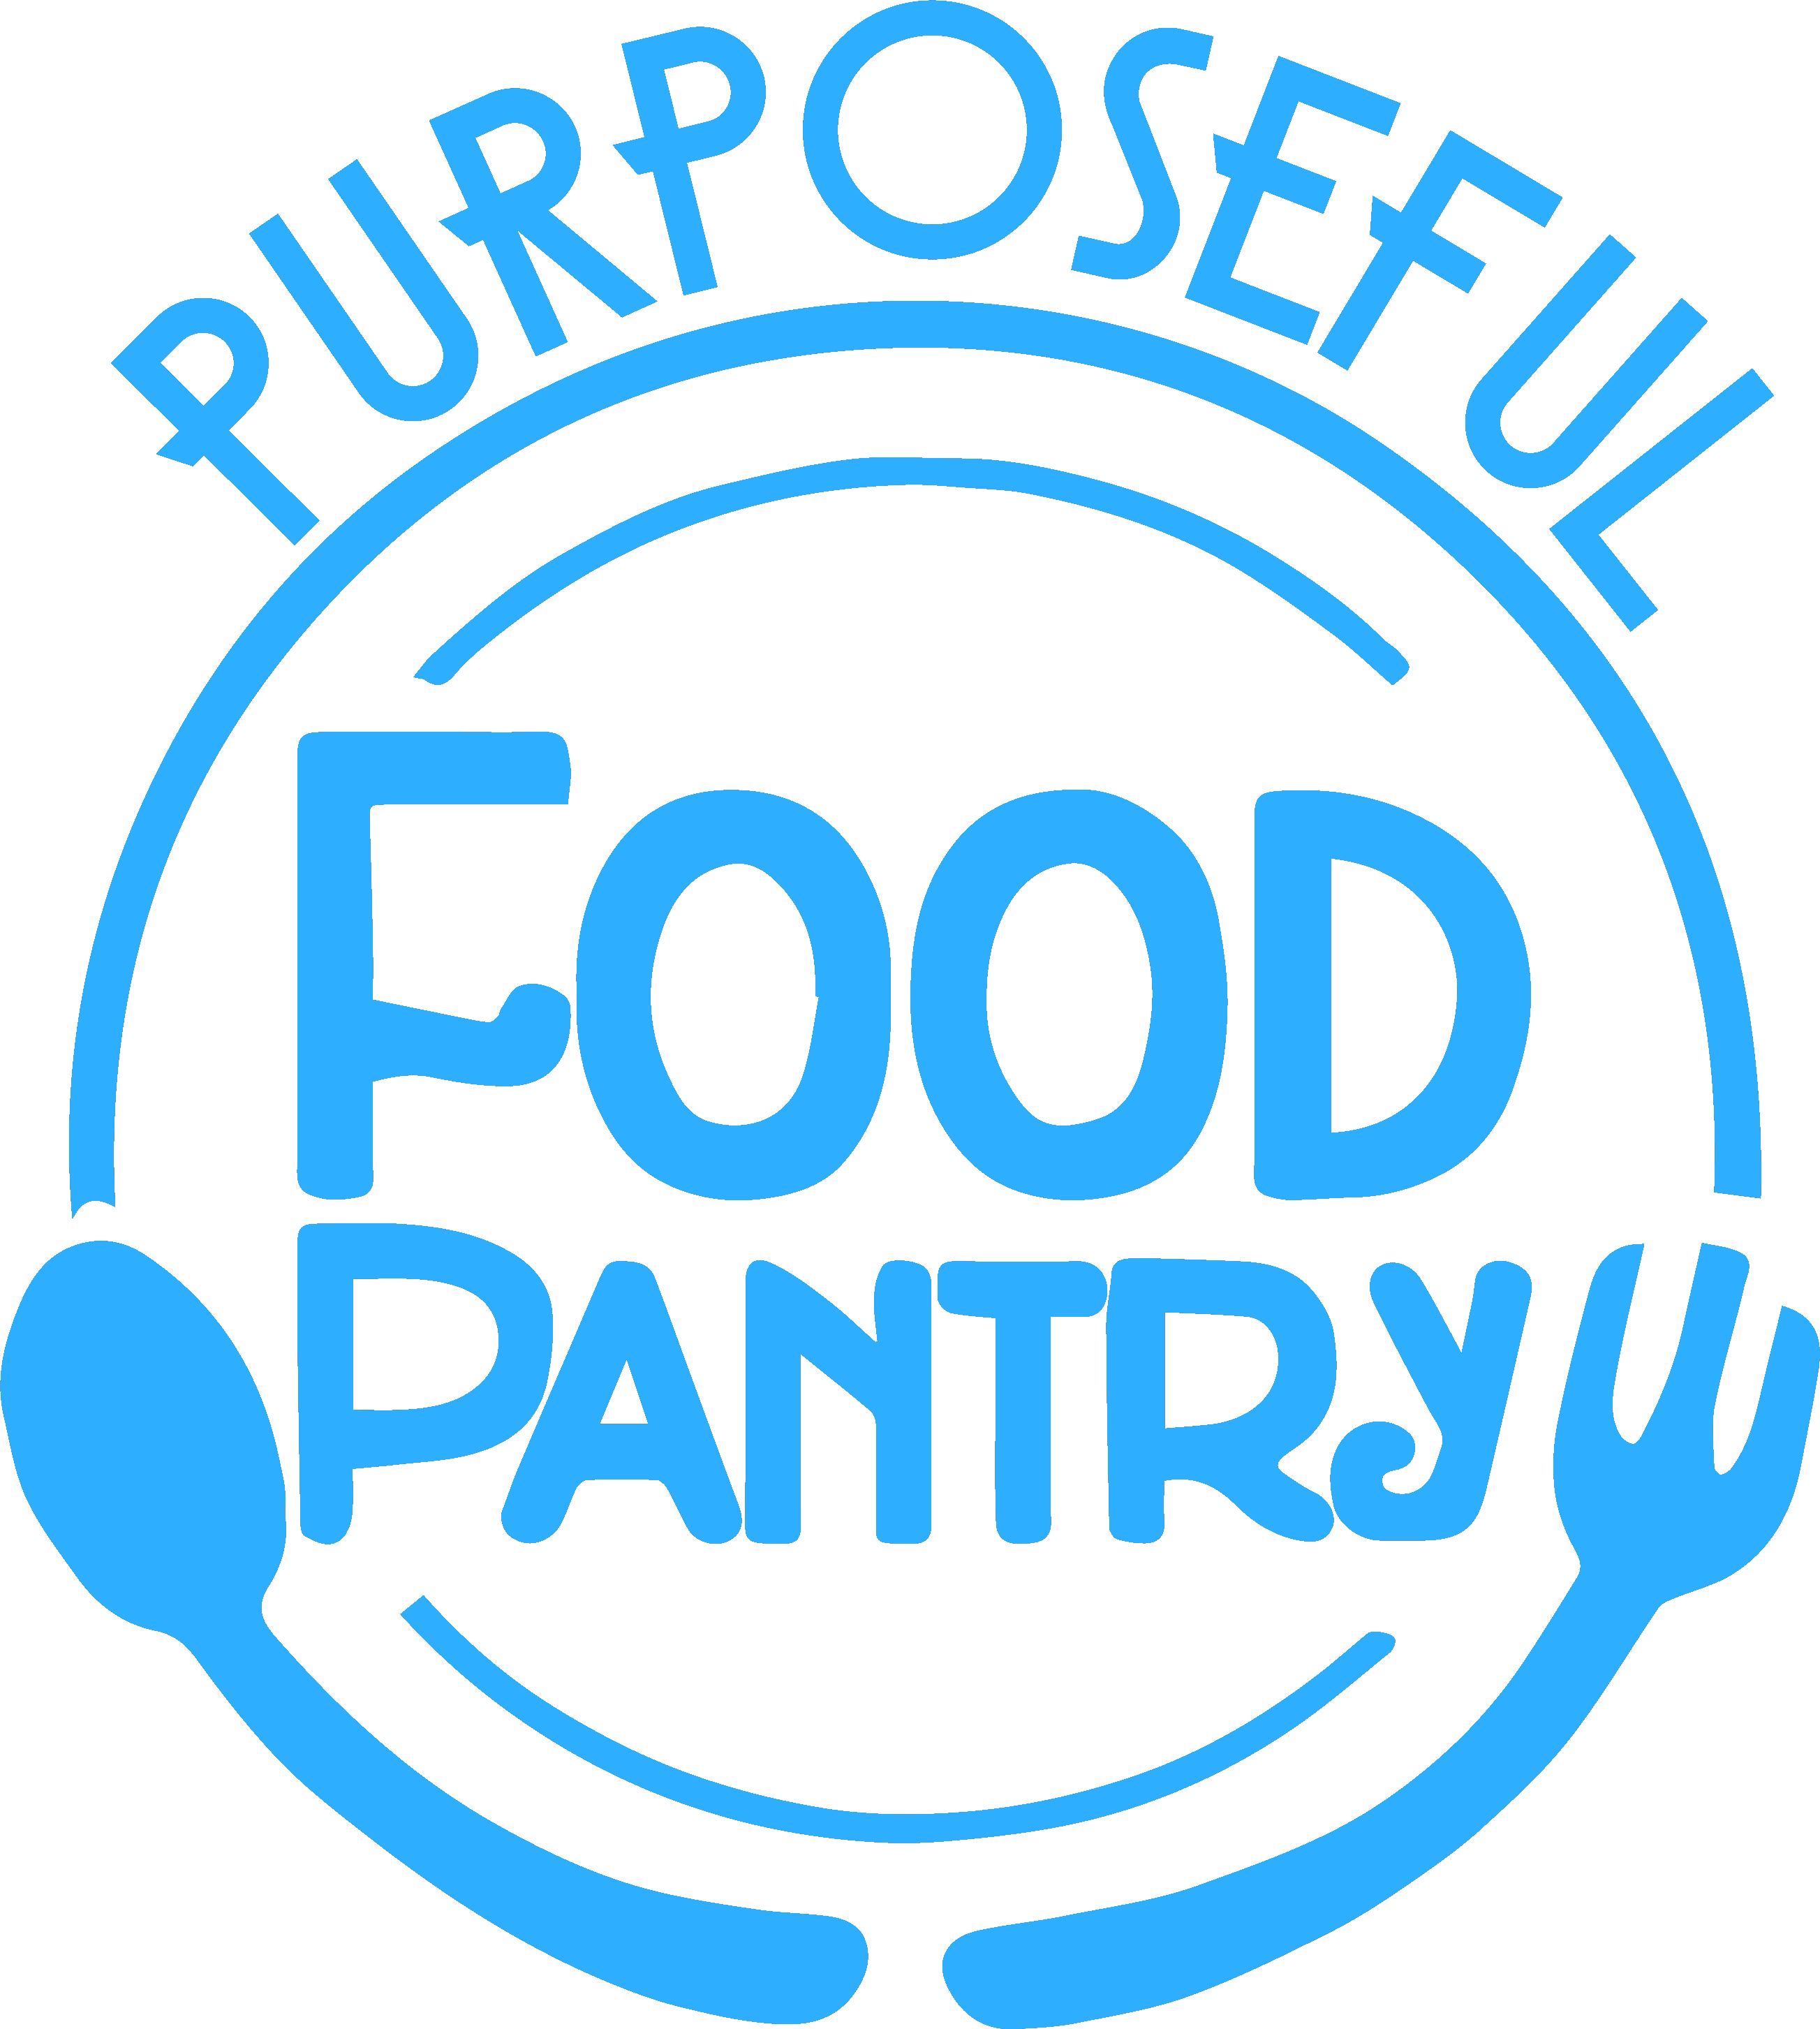 Purposeful Food Pantry